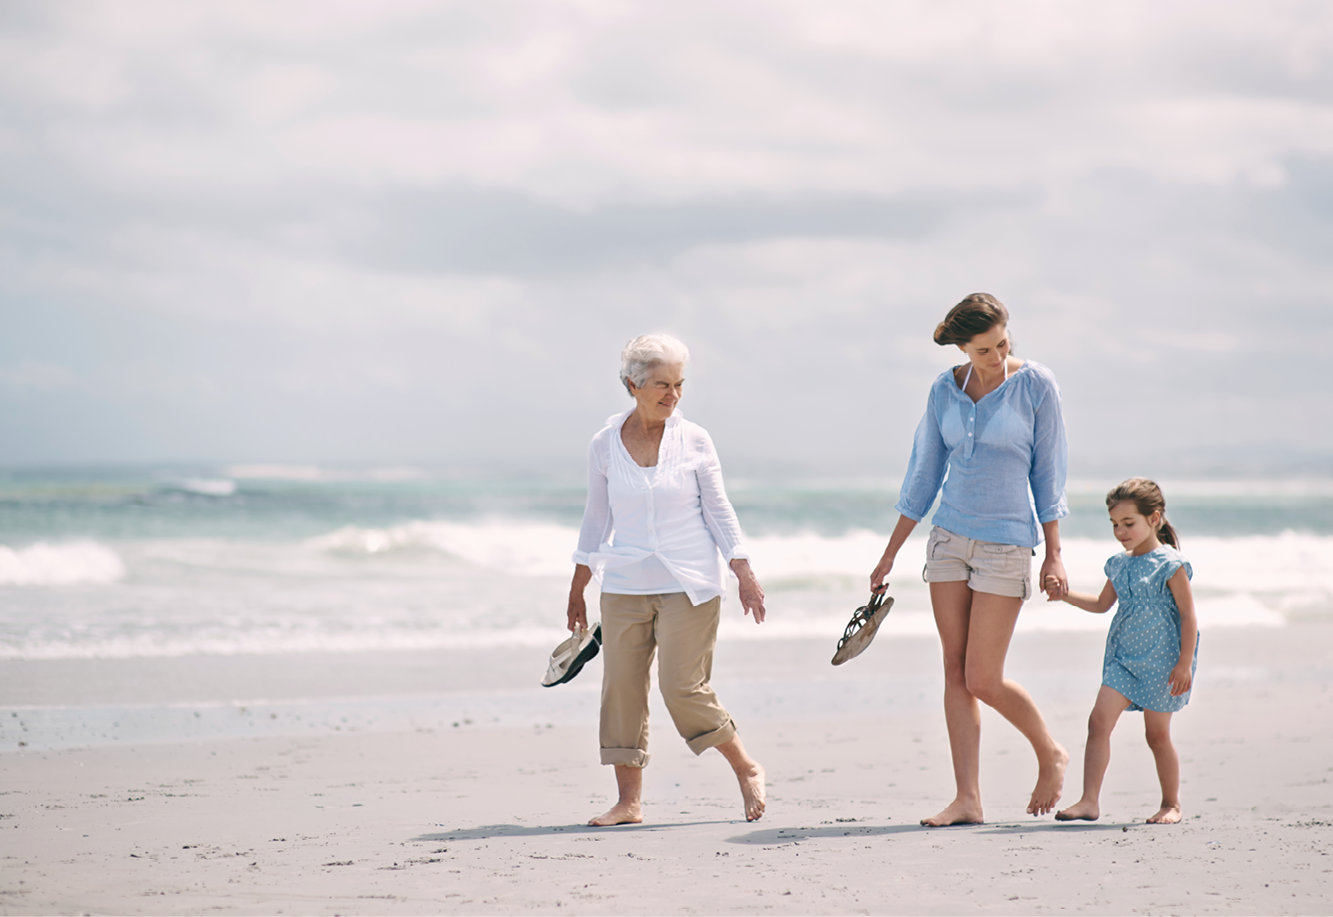 Photo of a family walking on a beach